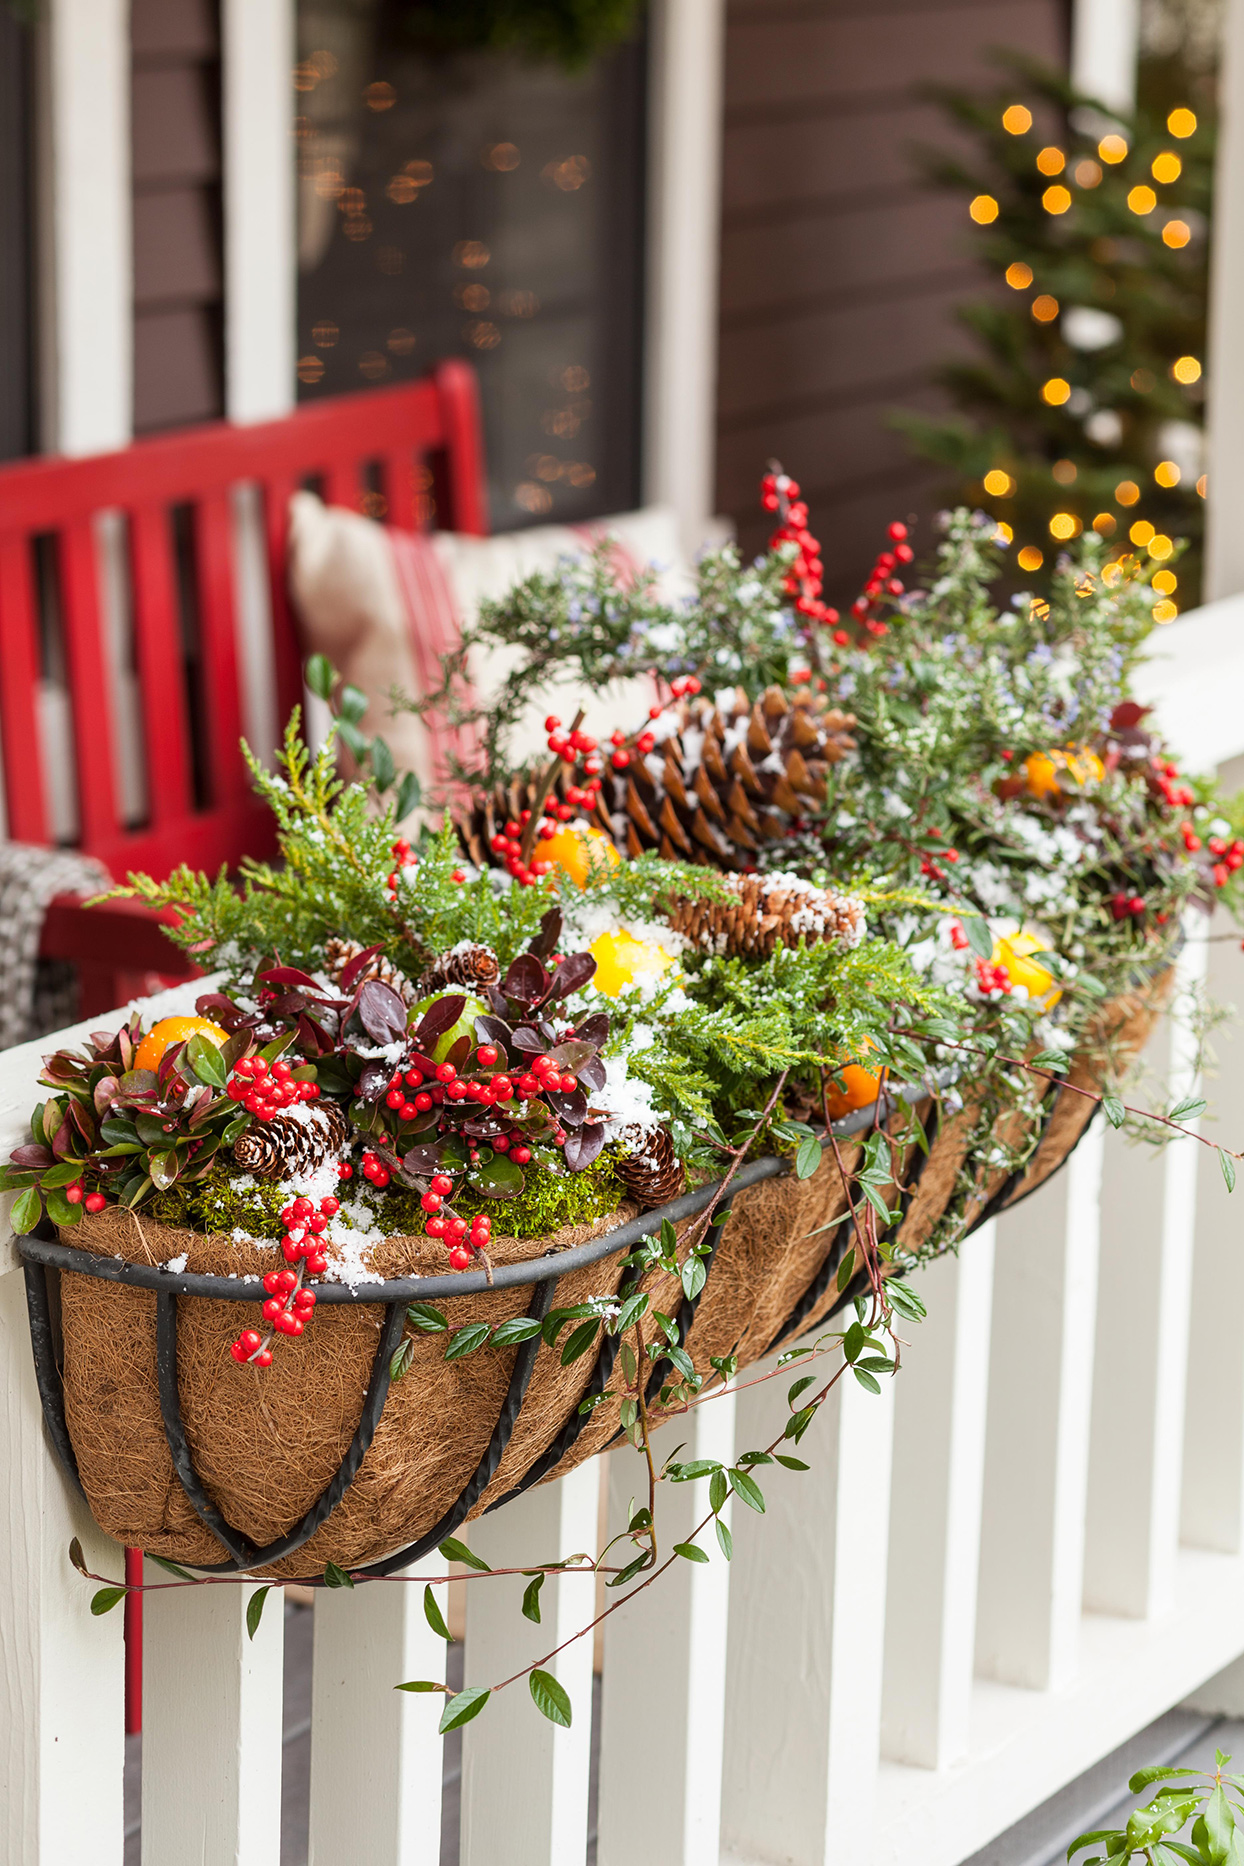 holiday décor accent box on white porch railing